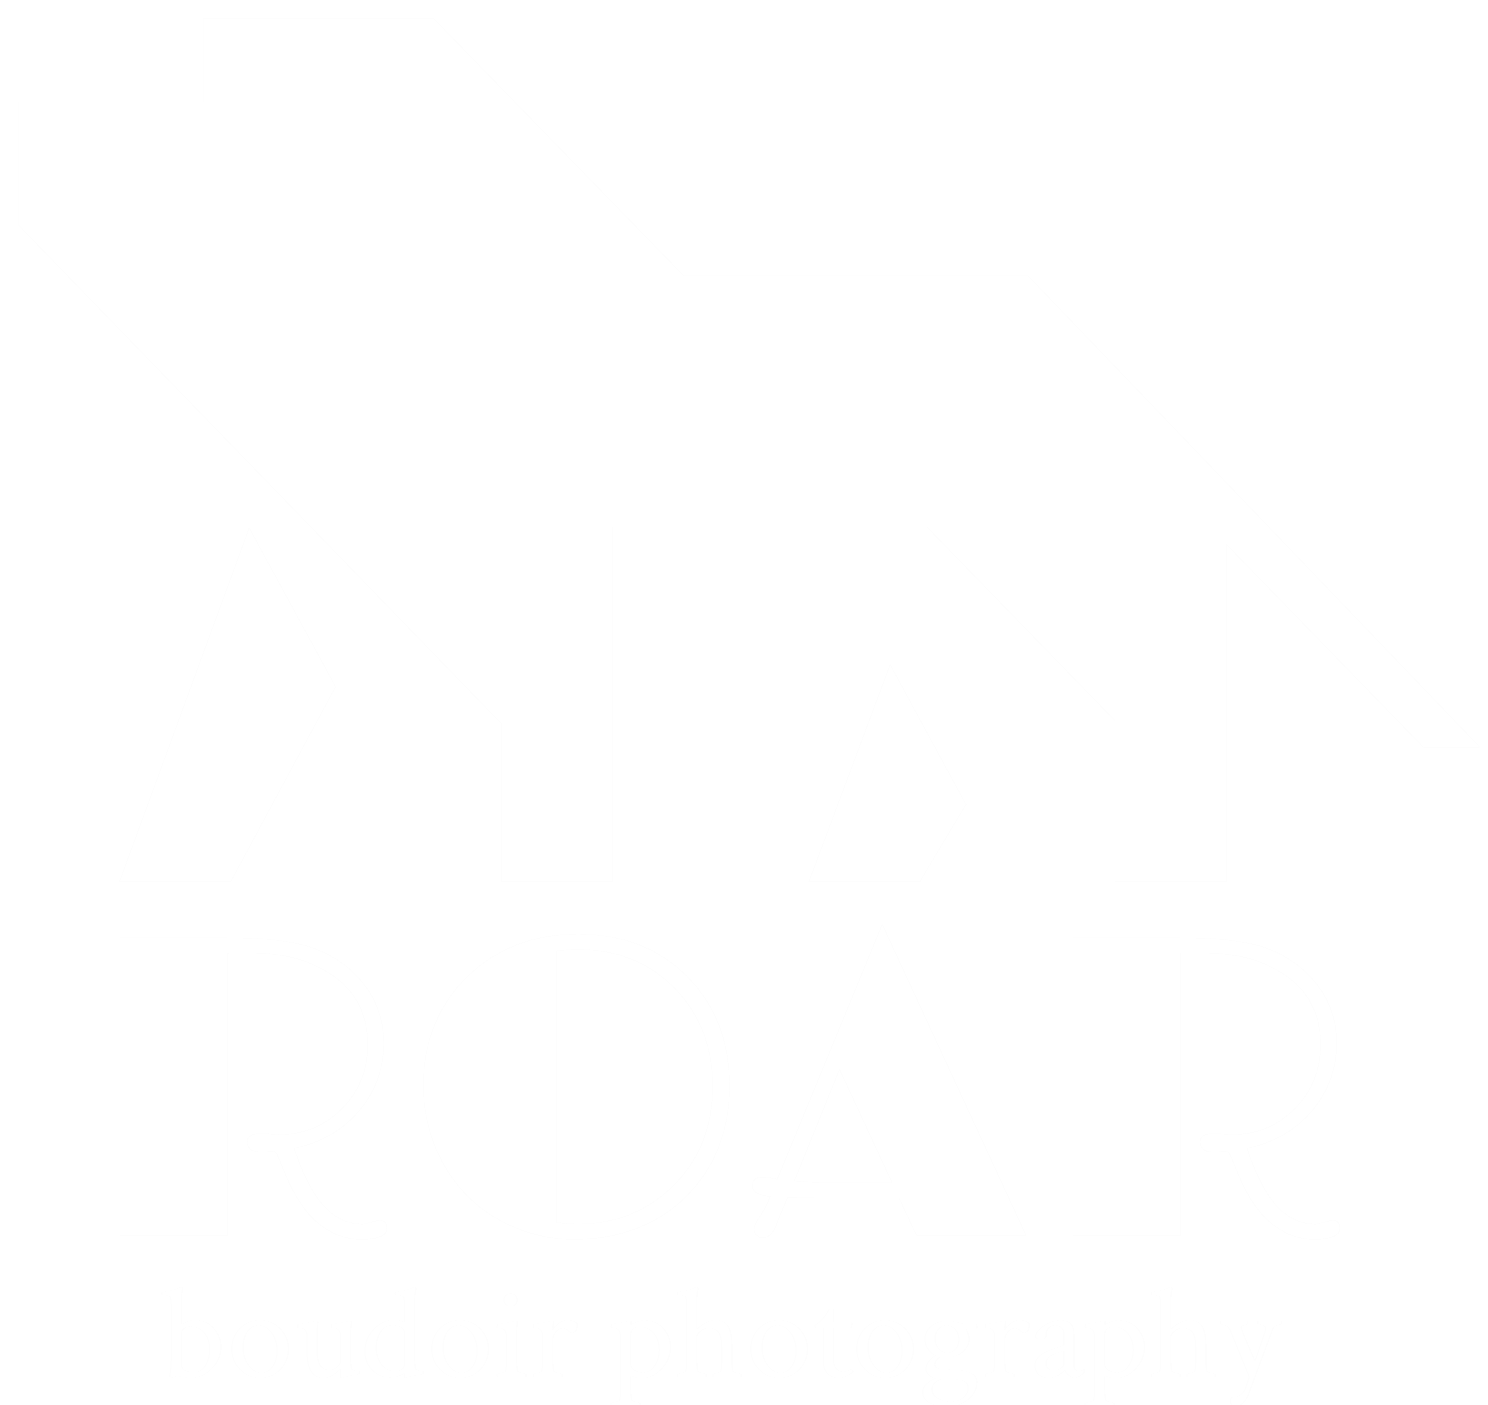 Roar Boudoir Photography